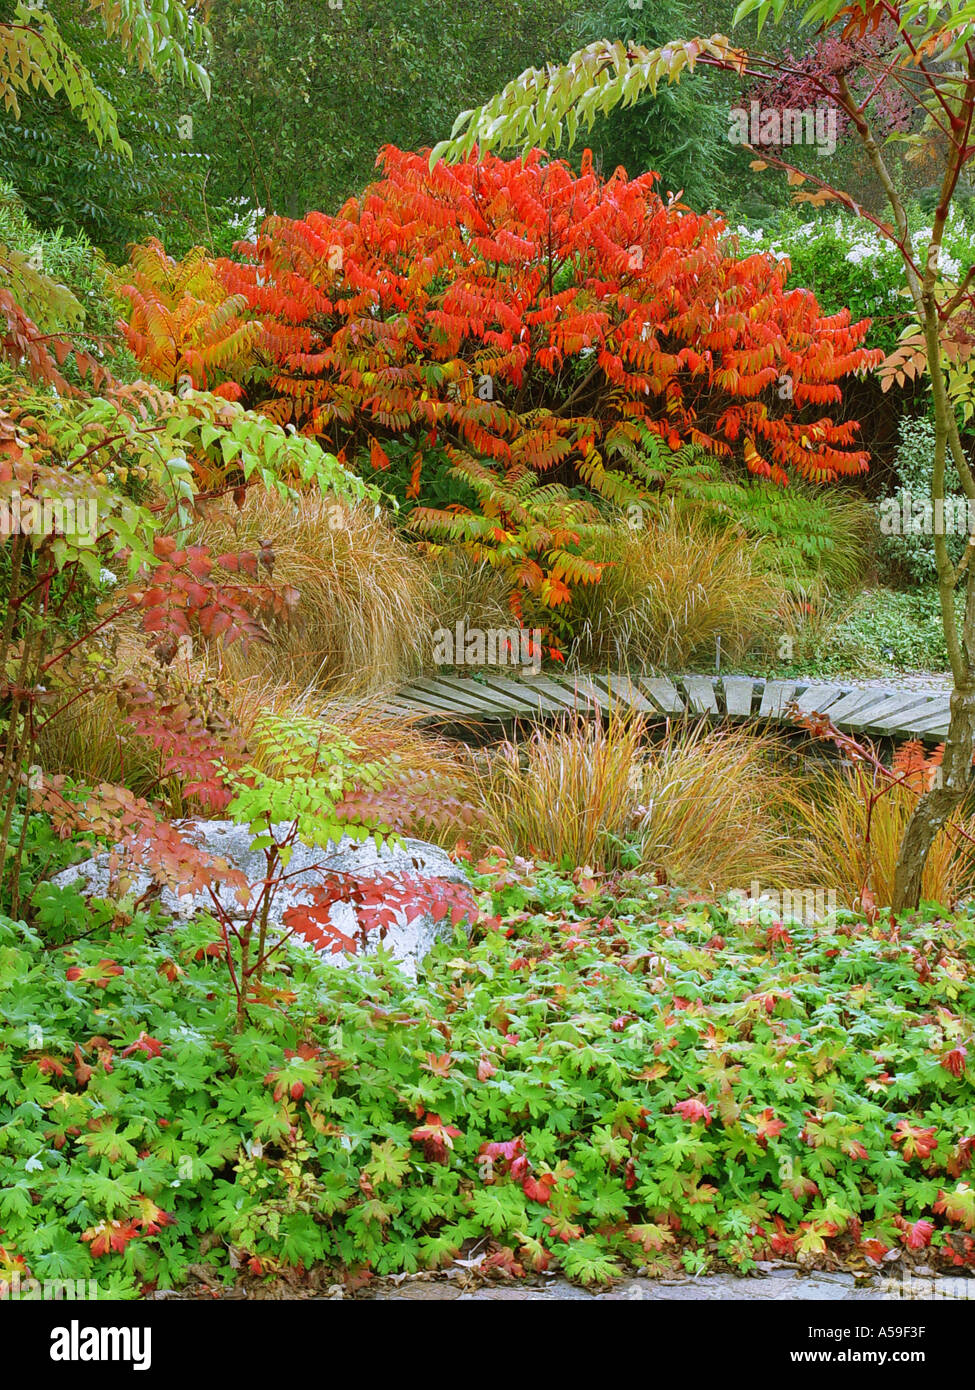 Autumn Garden View Broadview Gardens Kent